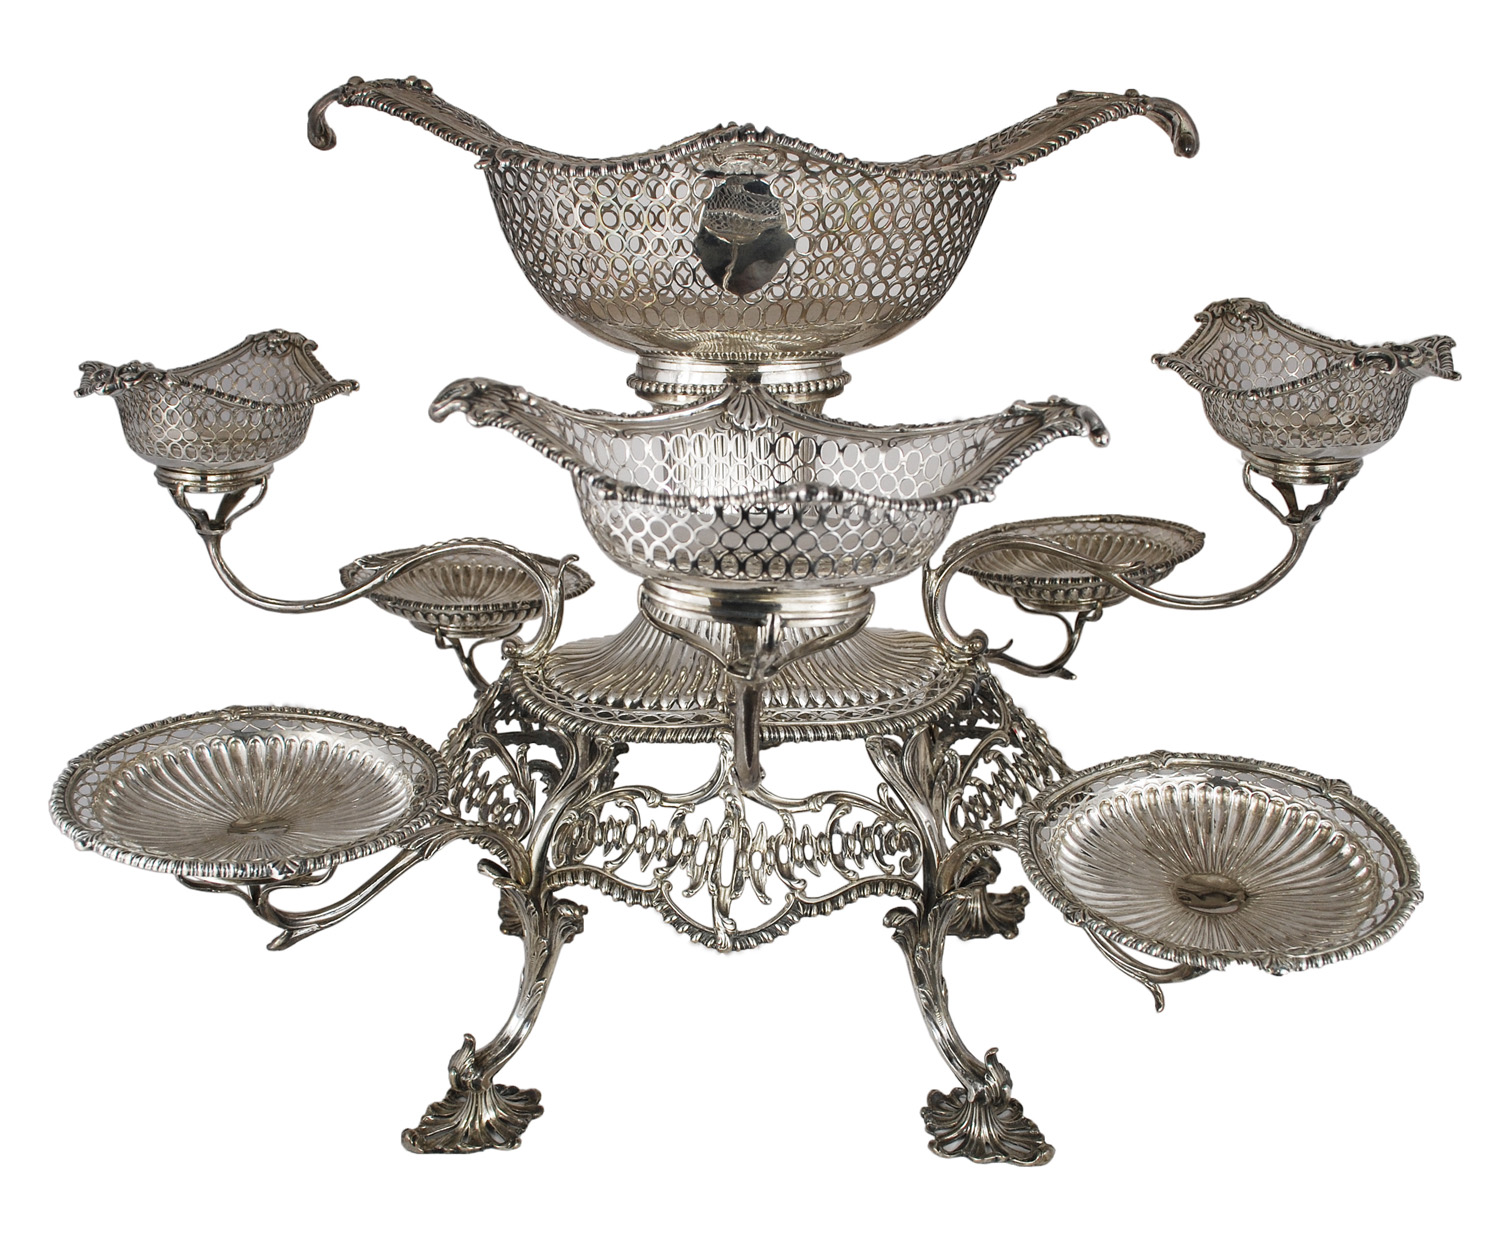 Endearing Epergne | Engaging Sterling Silver Epergne